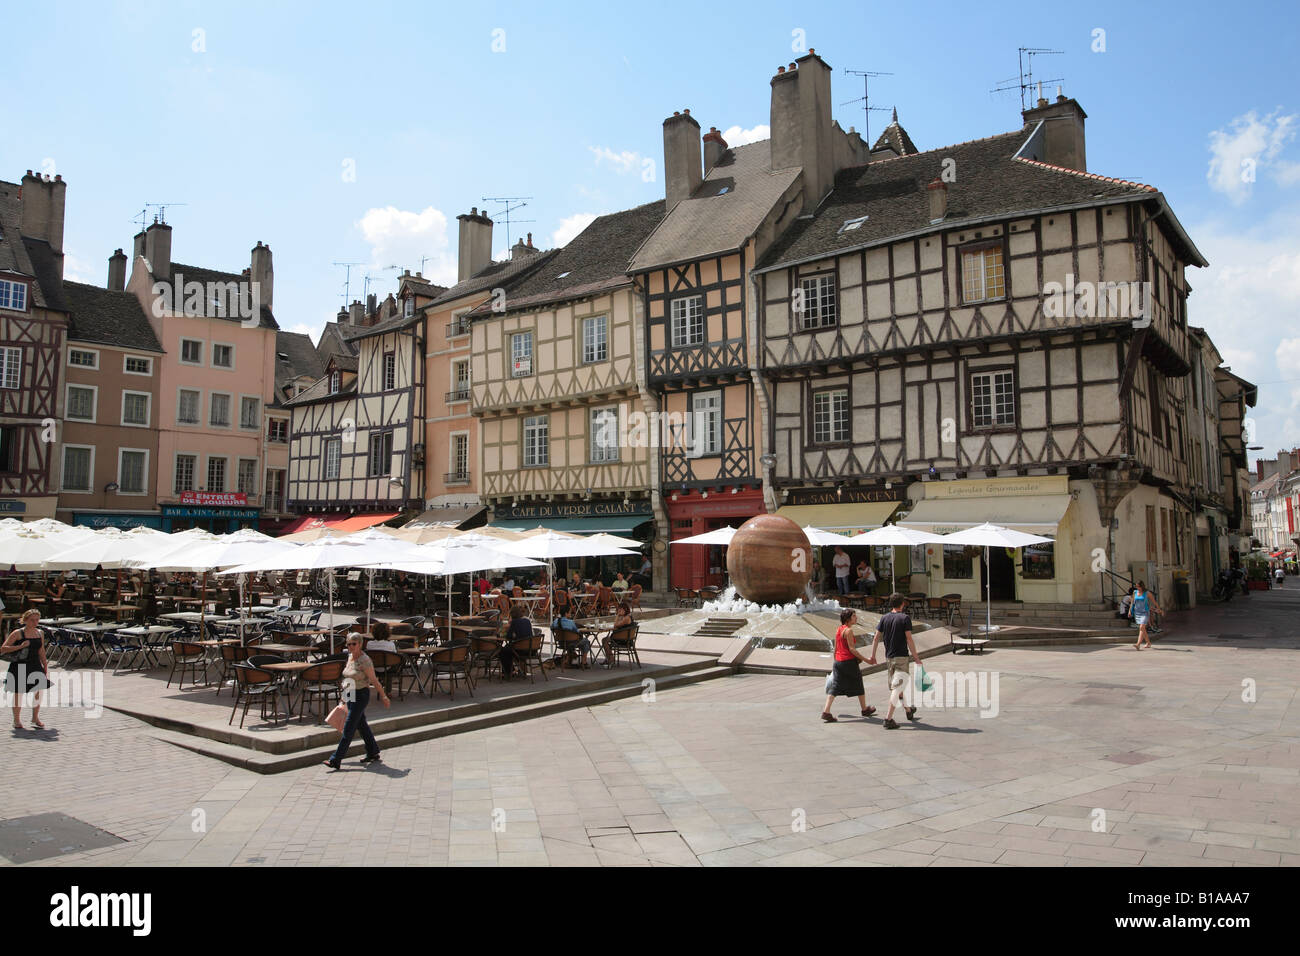 town square in the historic medieval french town of chalon sur saone stock photo royalty free. Black Bedroom Furniture Sets. Home Design Ideas